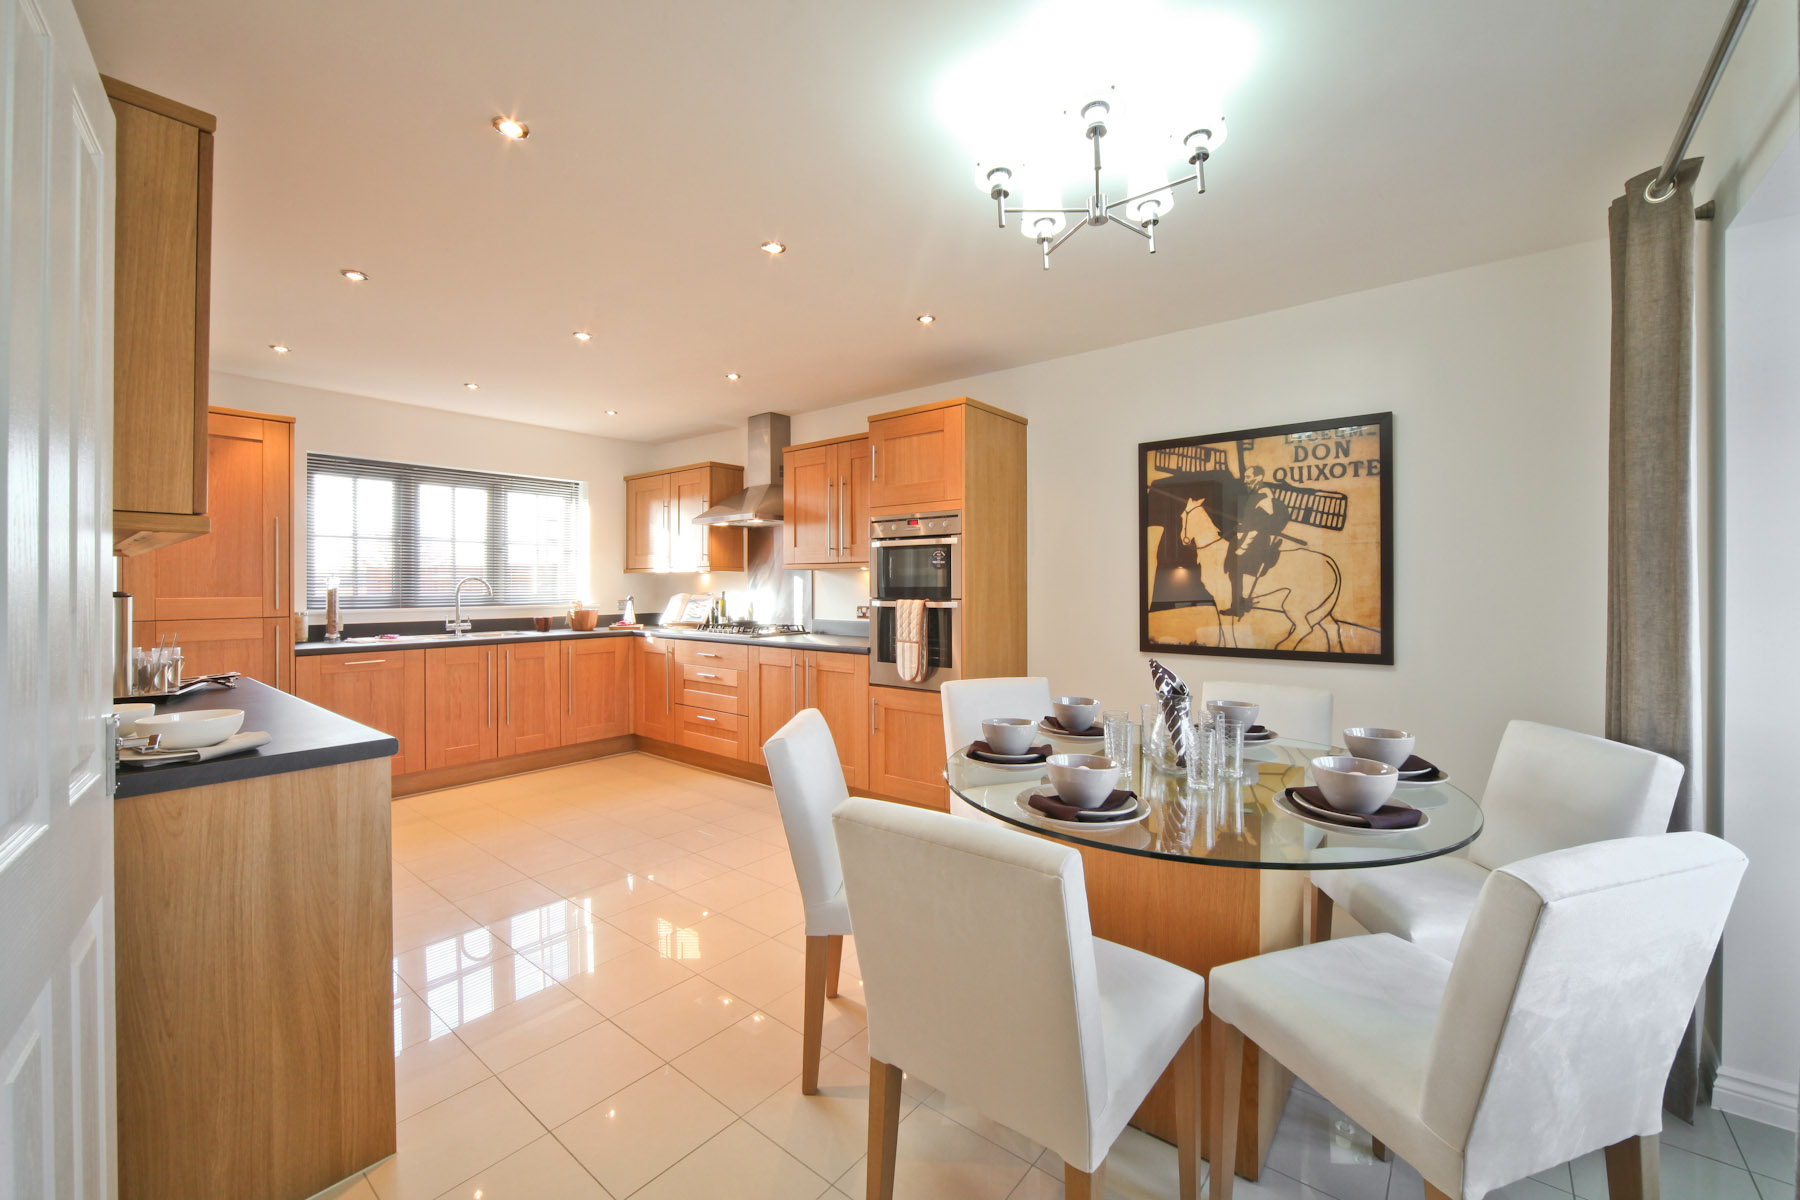 Taylor Wimpey typical kitchen-breakfast room